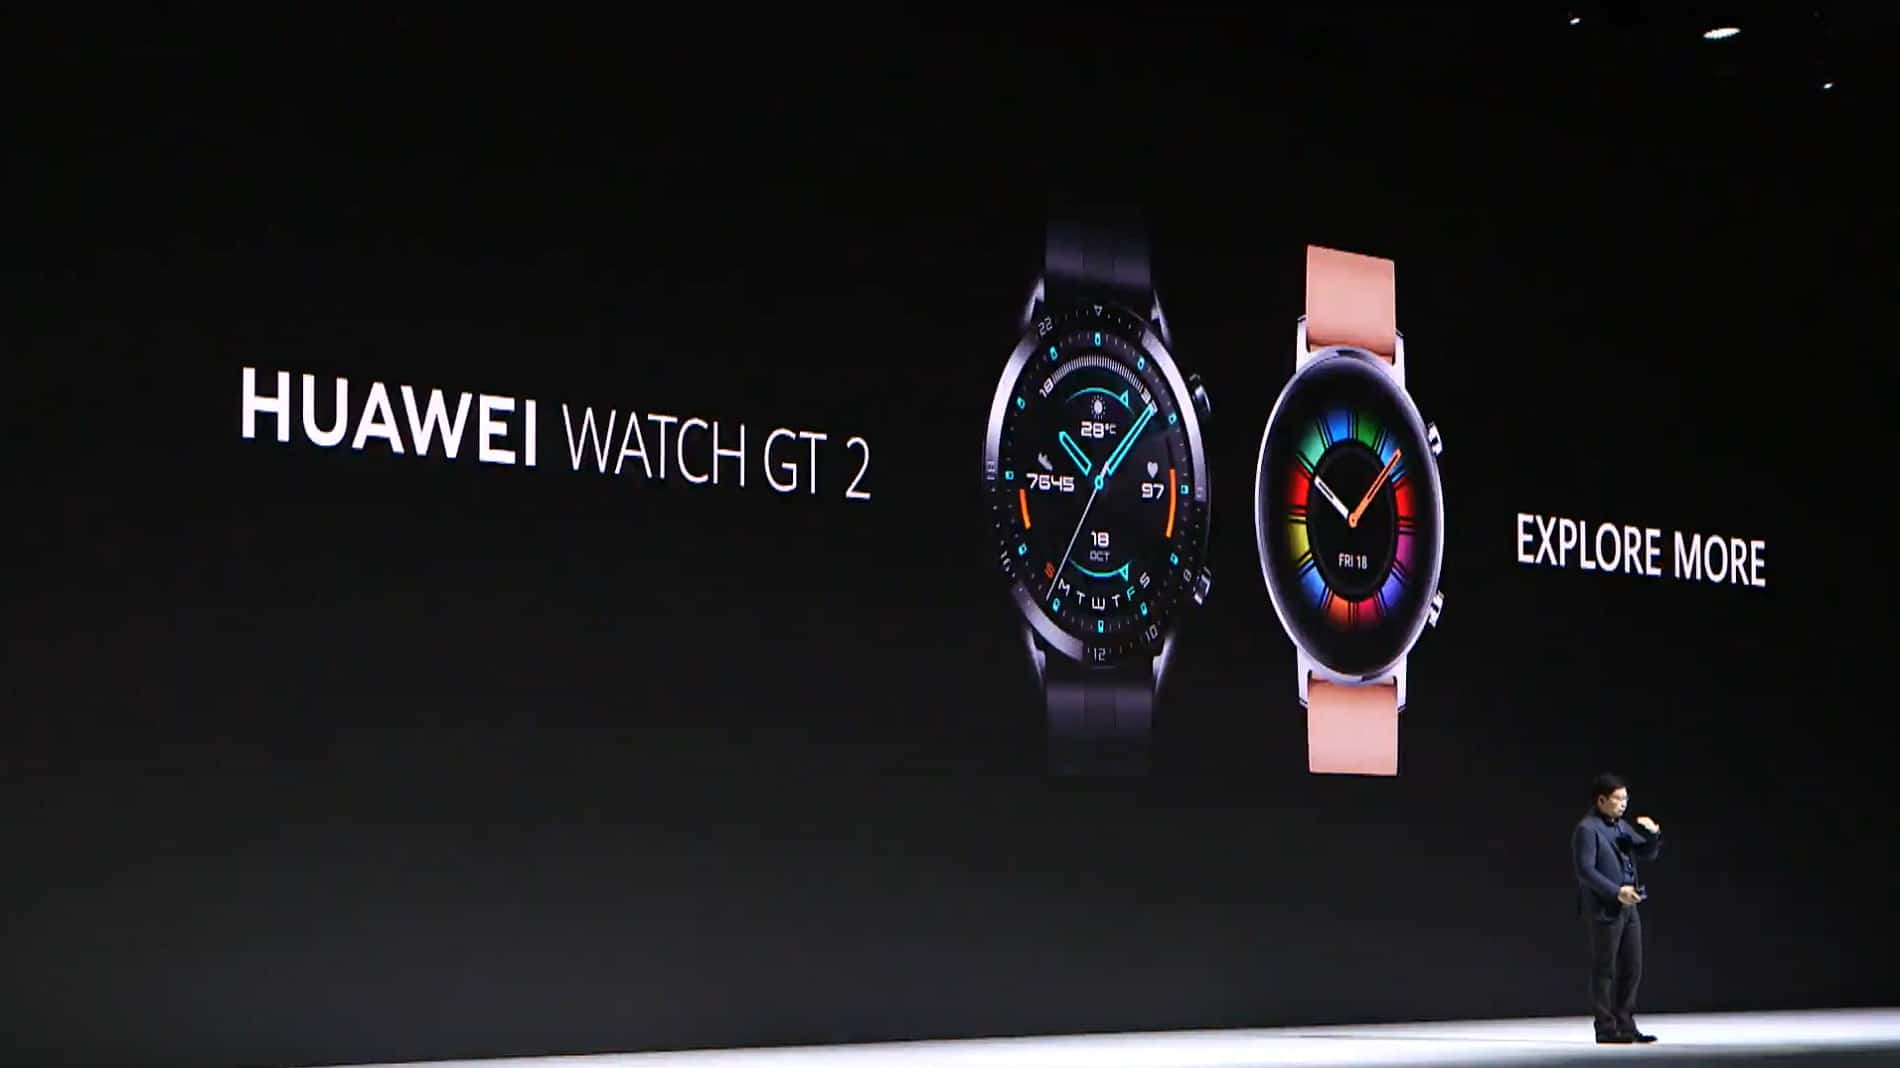 Huawei Mate 30 Event Watch GT 2